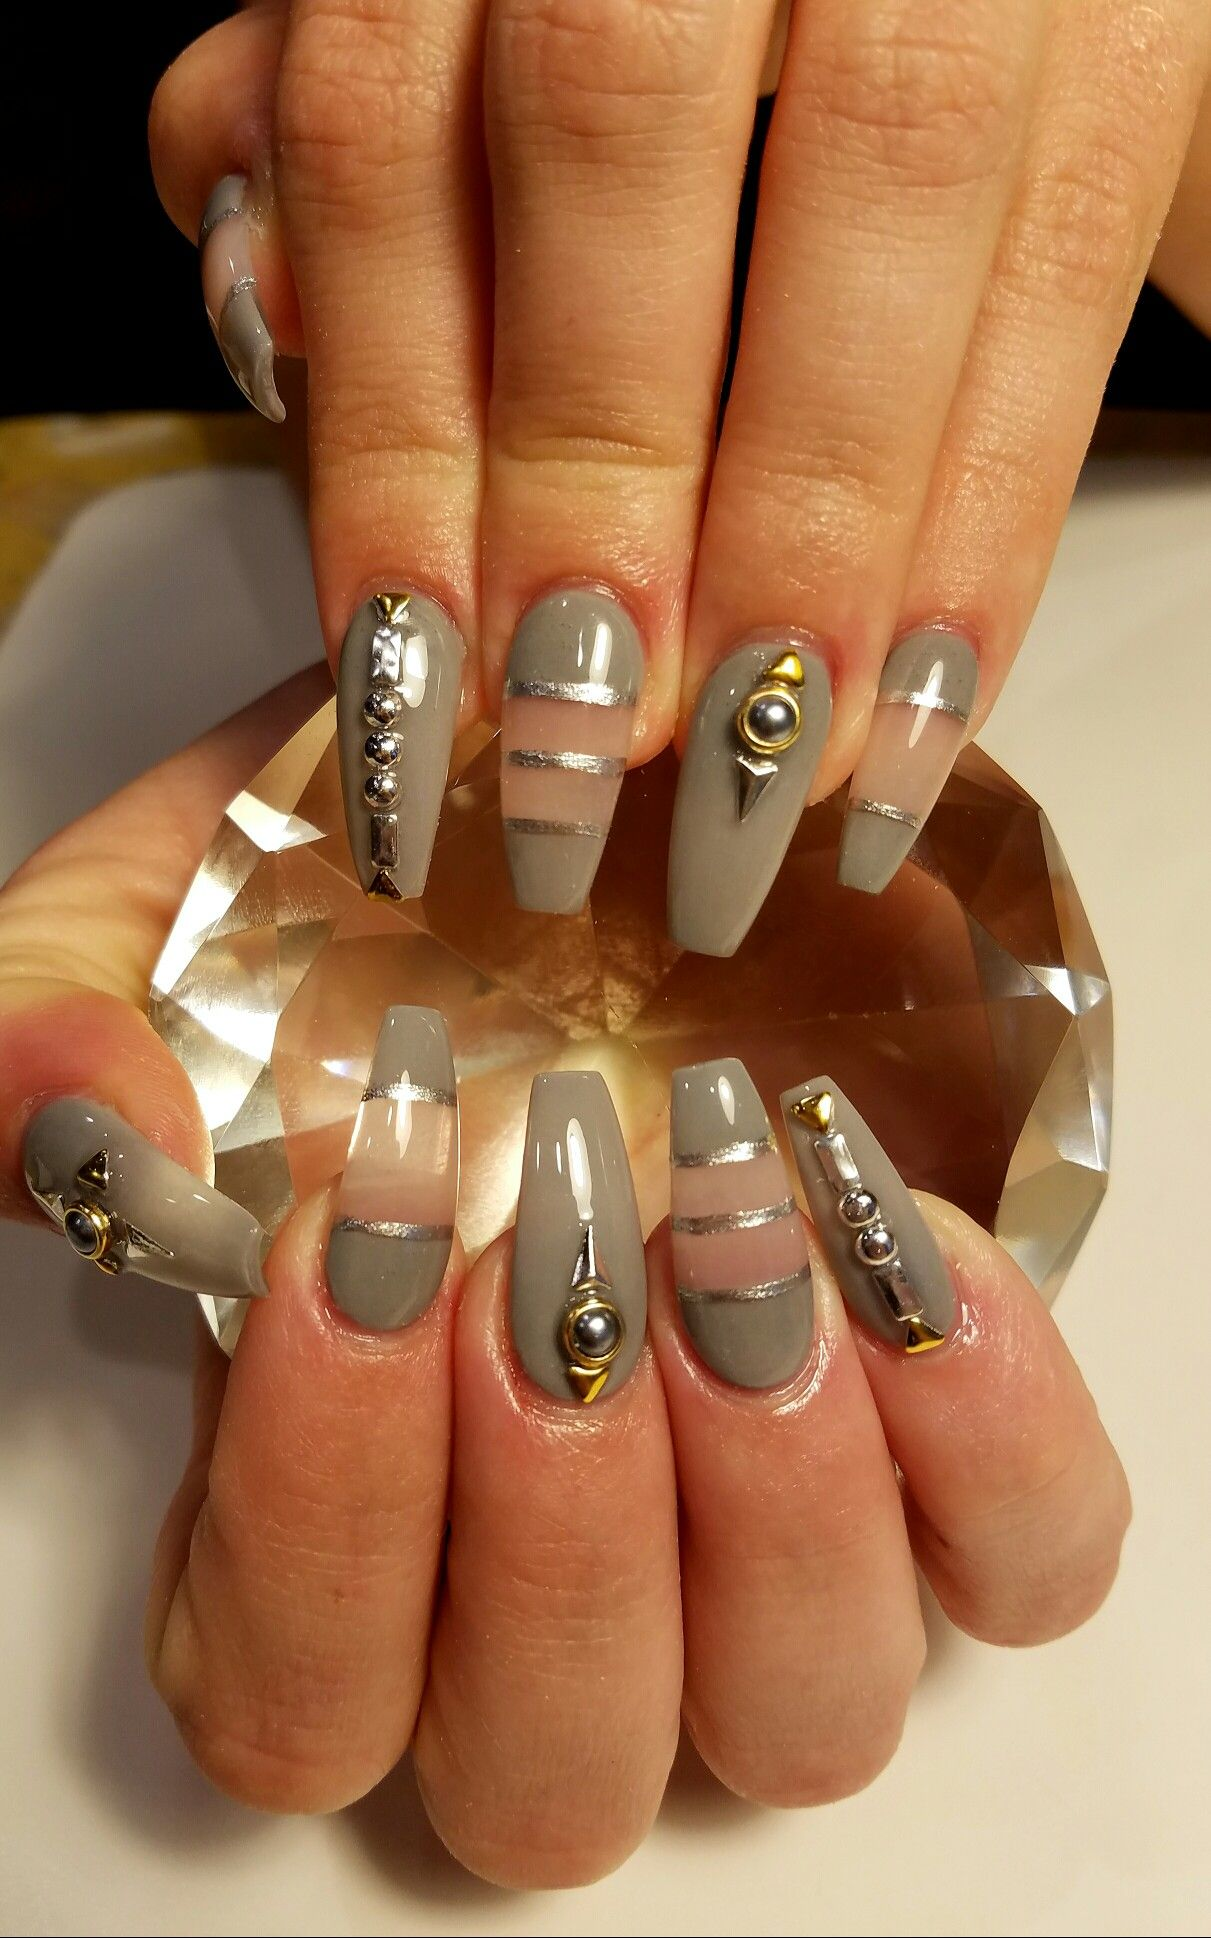 Flirtatious Nails In 2019: Gray, Negative Space And Studs Coffin Nails